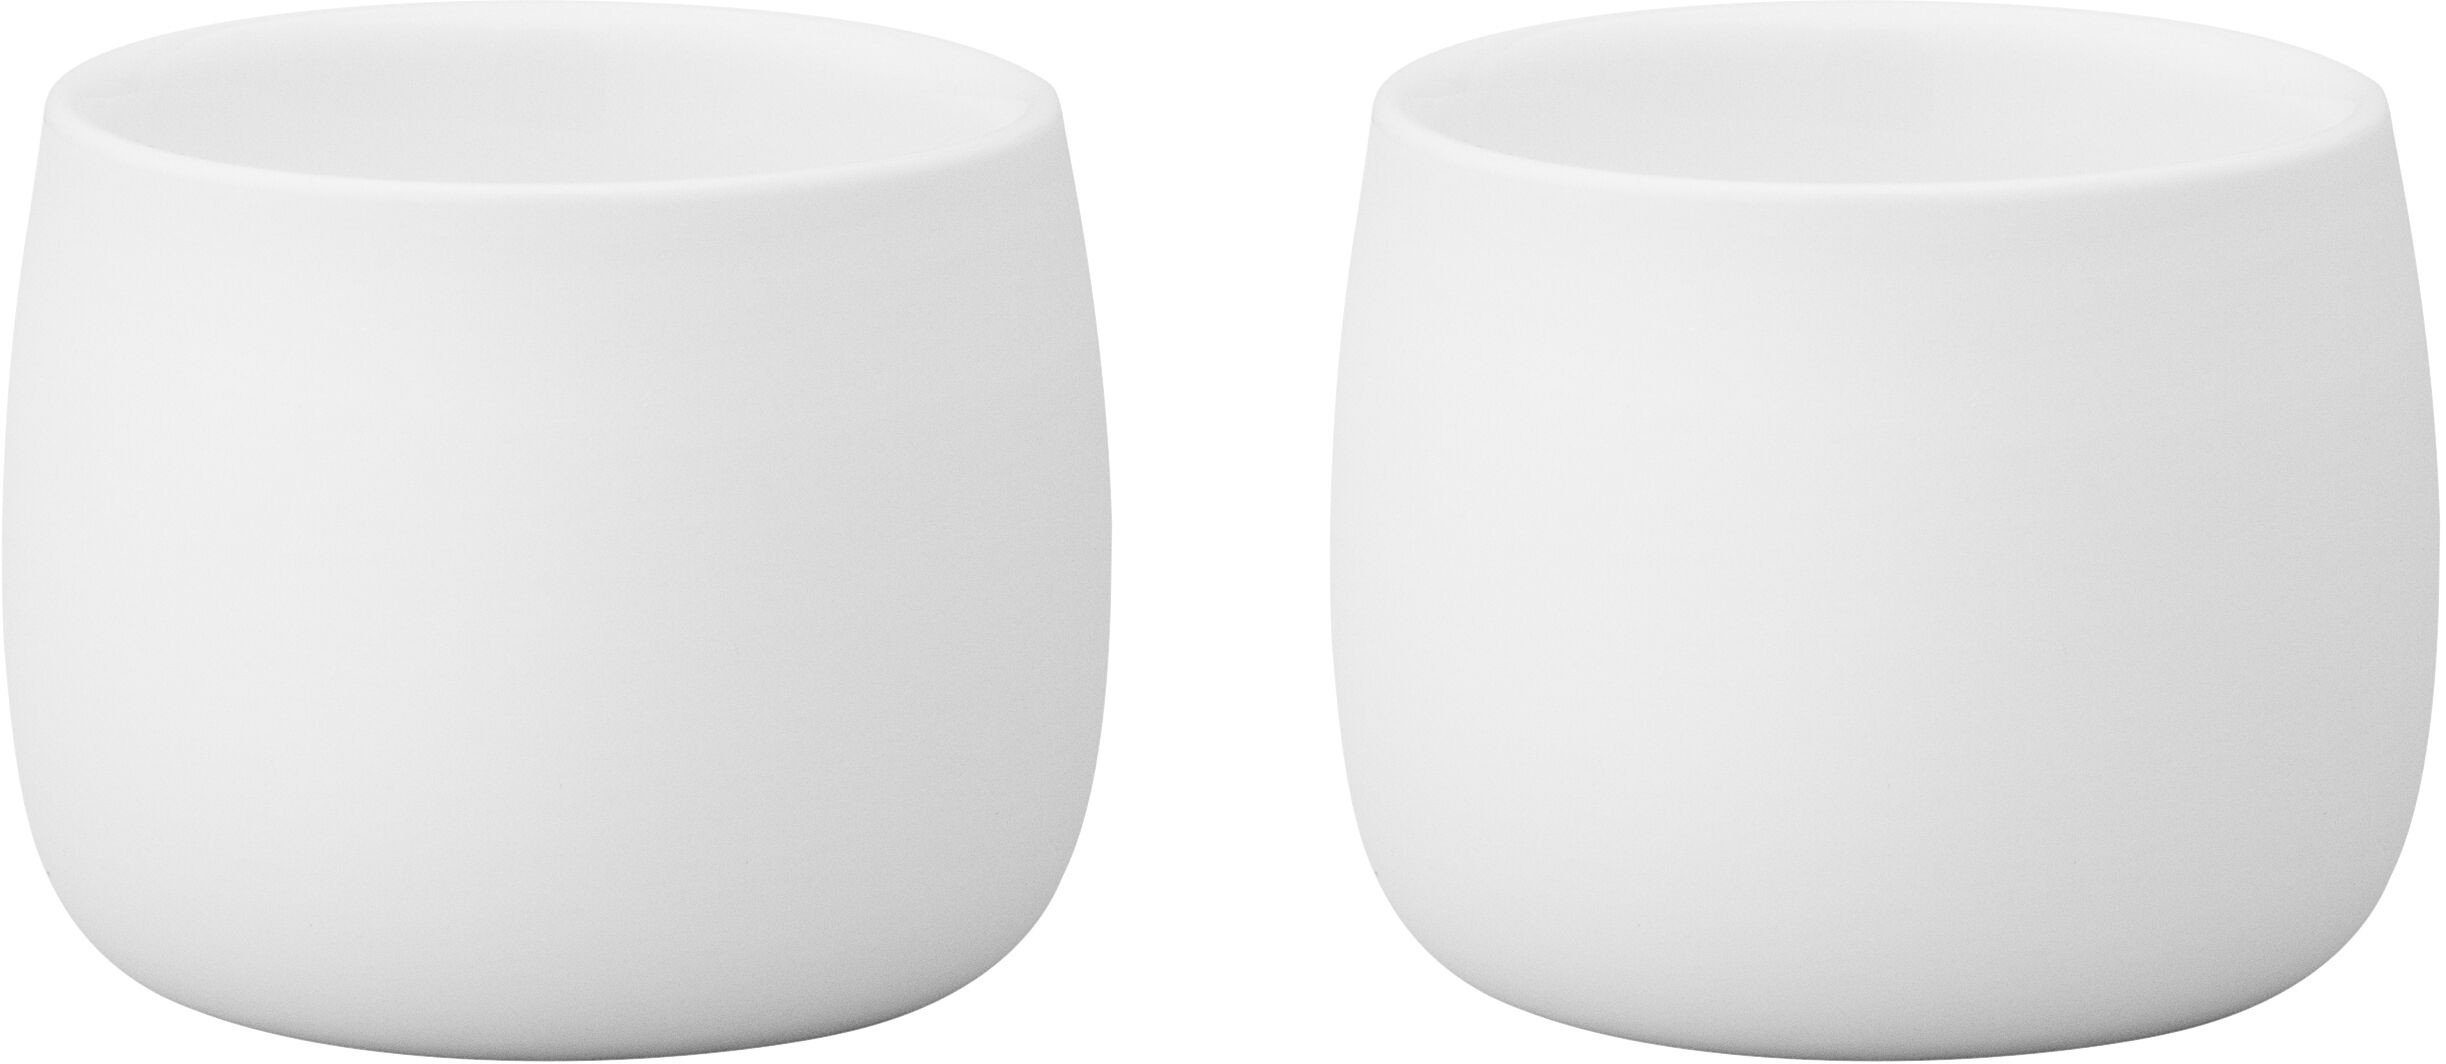 Pair of Foster Espresso Thermo Cup White by N. Foster for Stelton